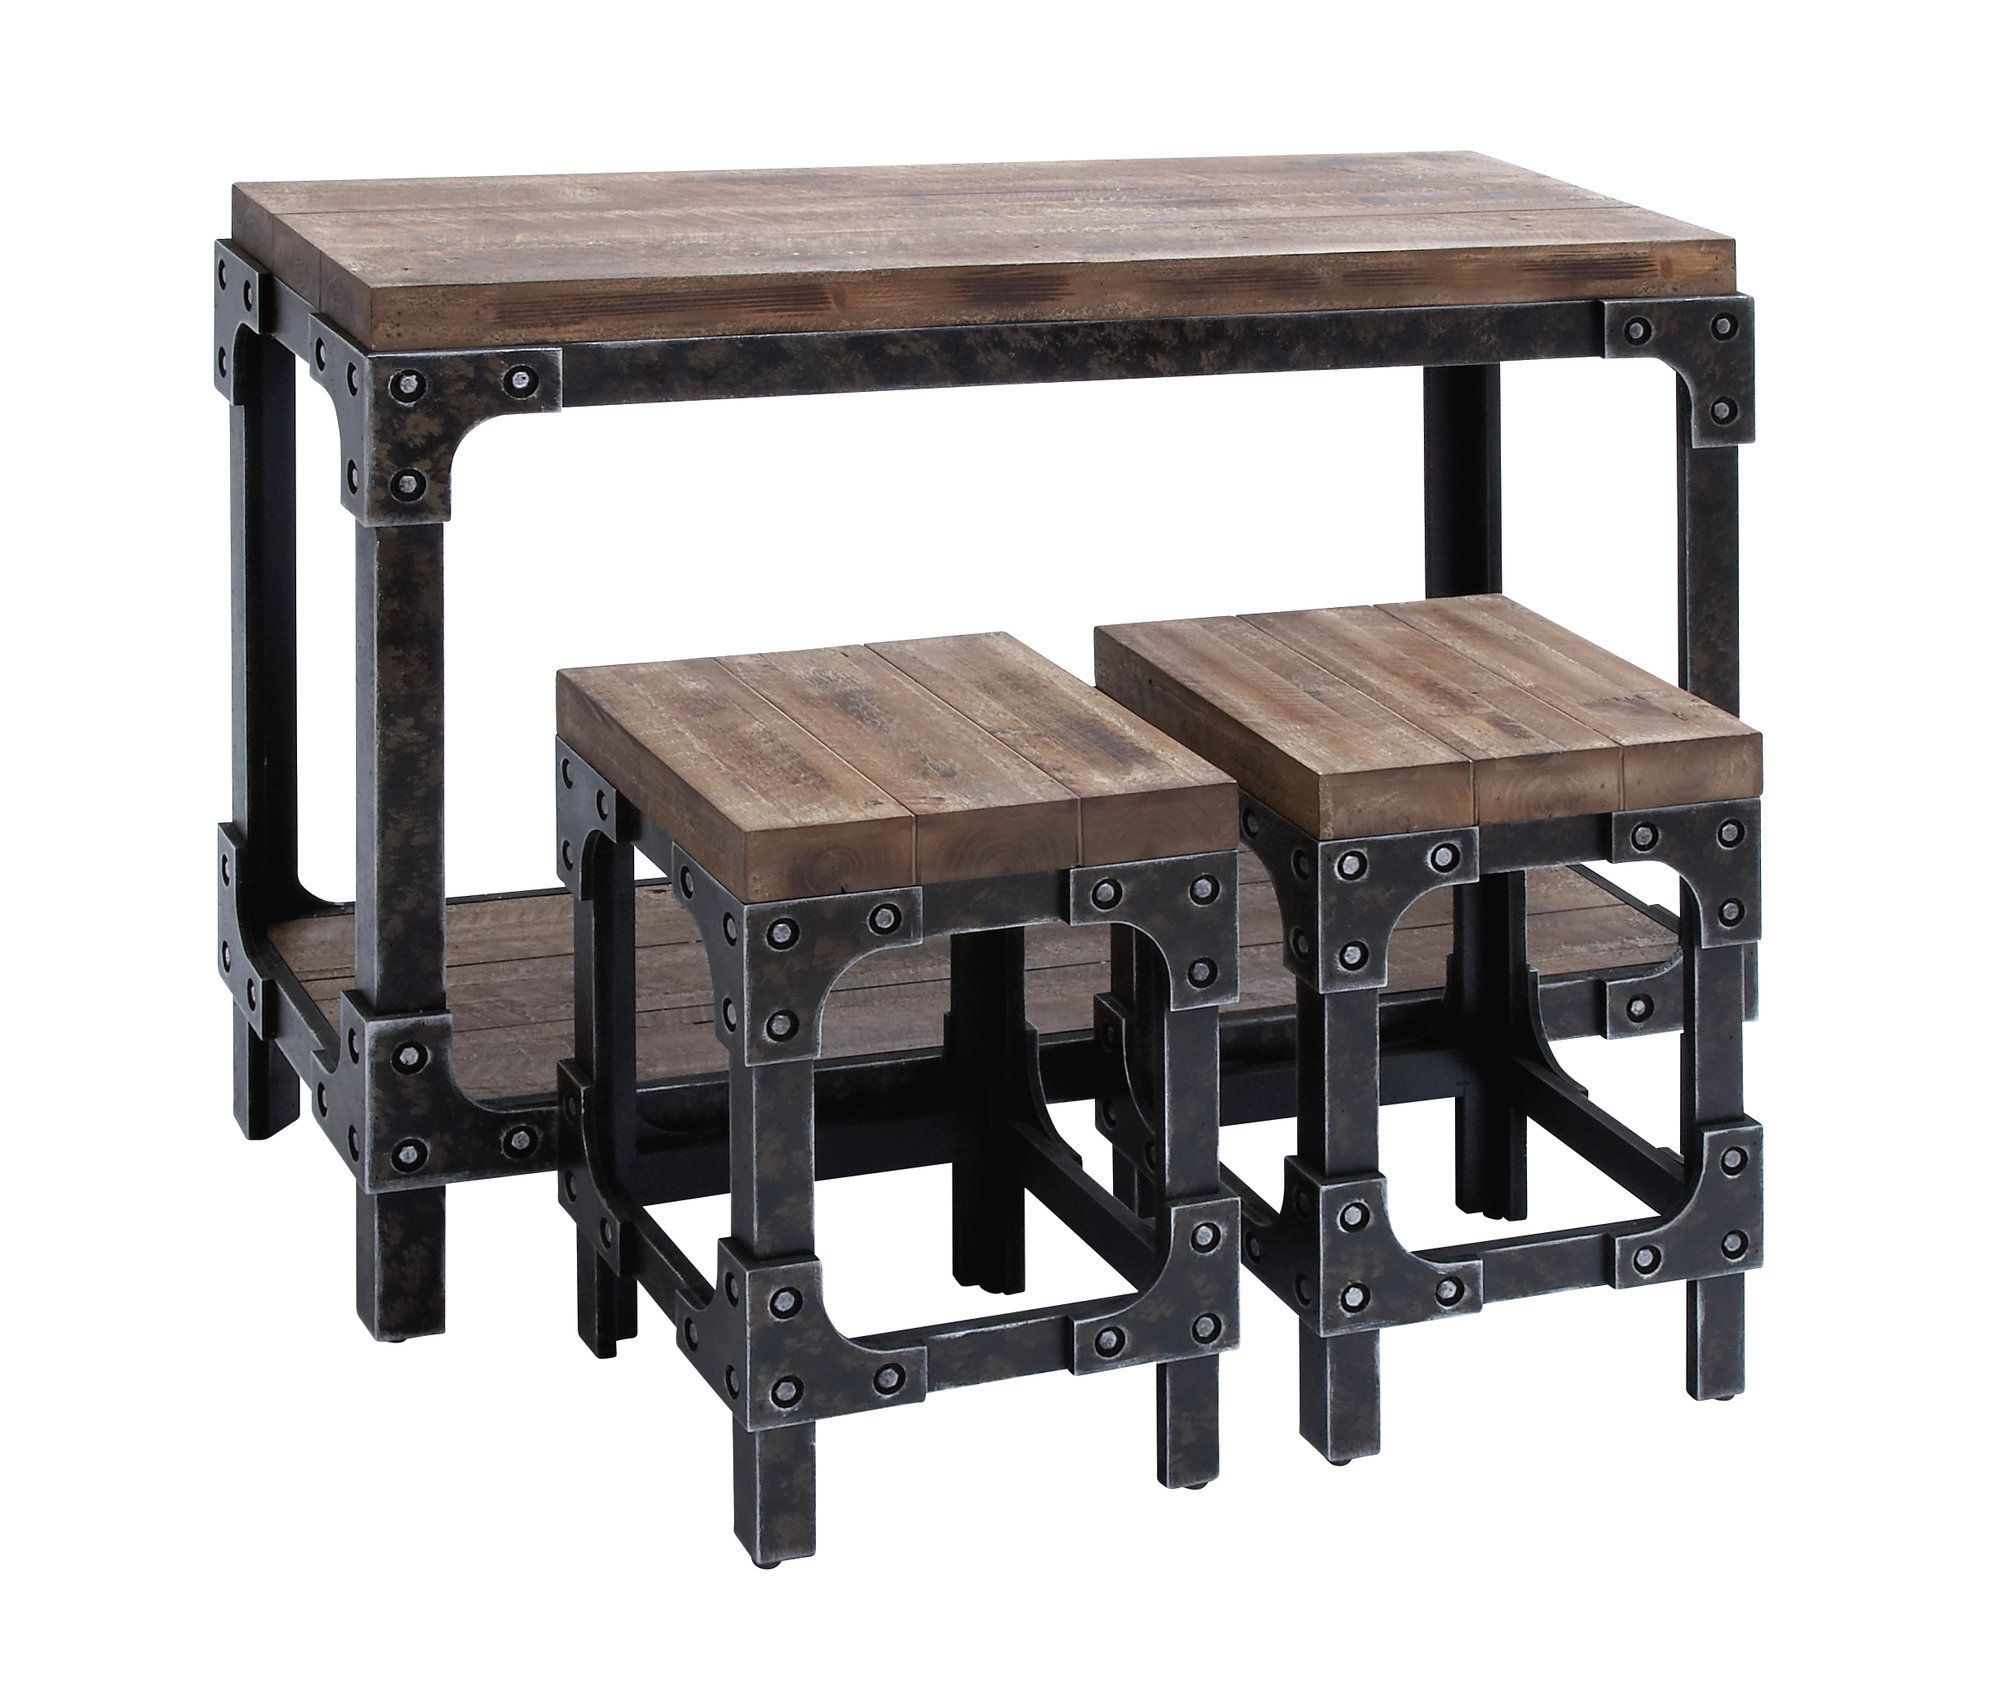 Luxury Pub Style Table and Chairs